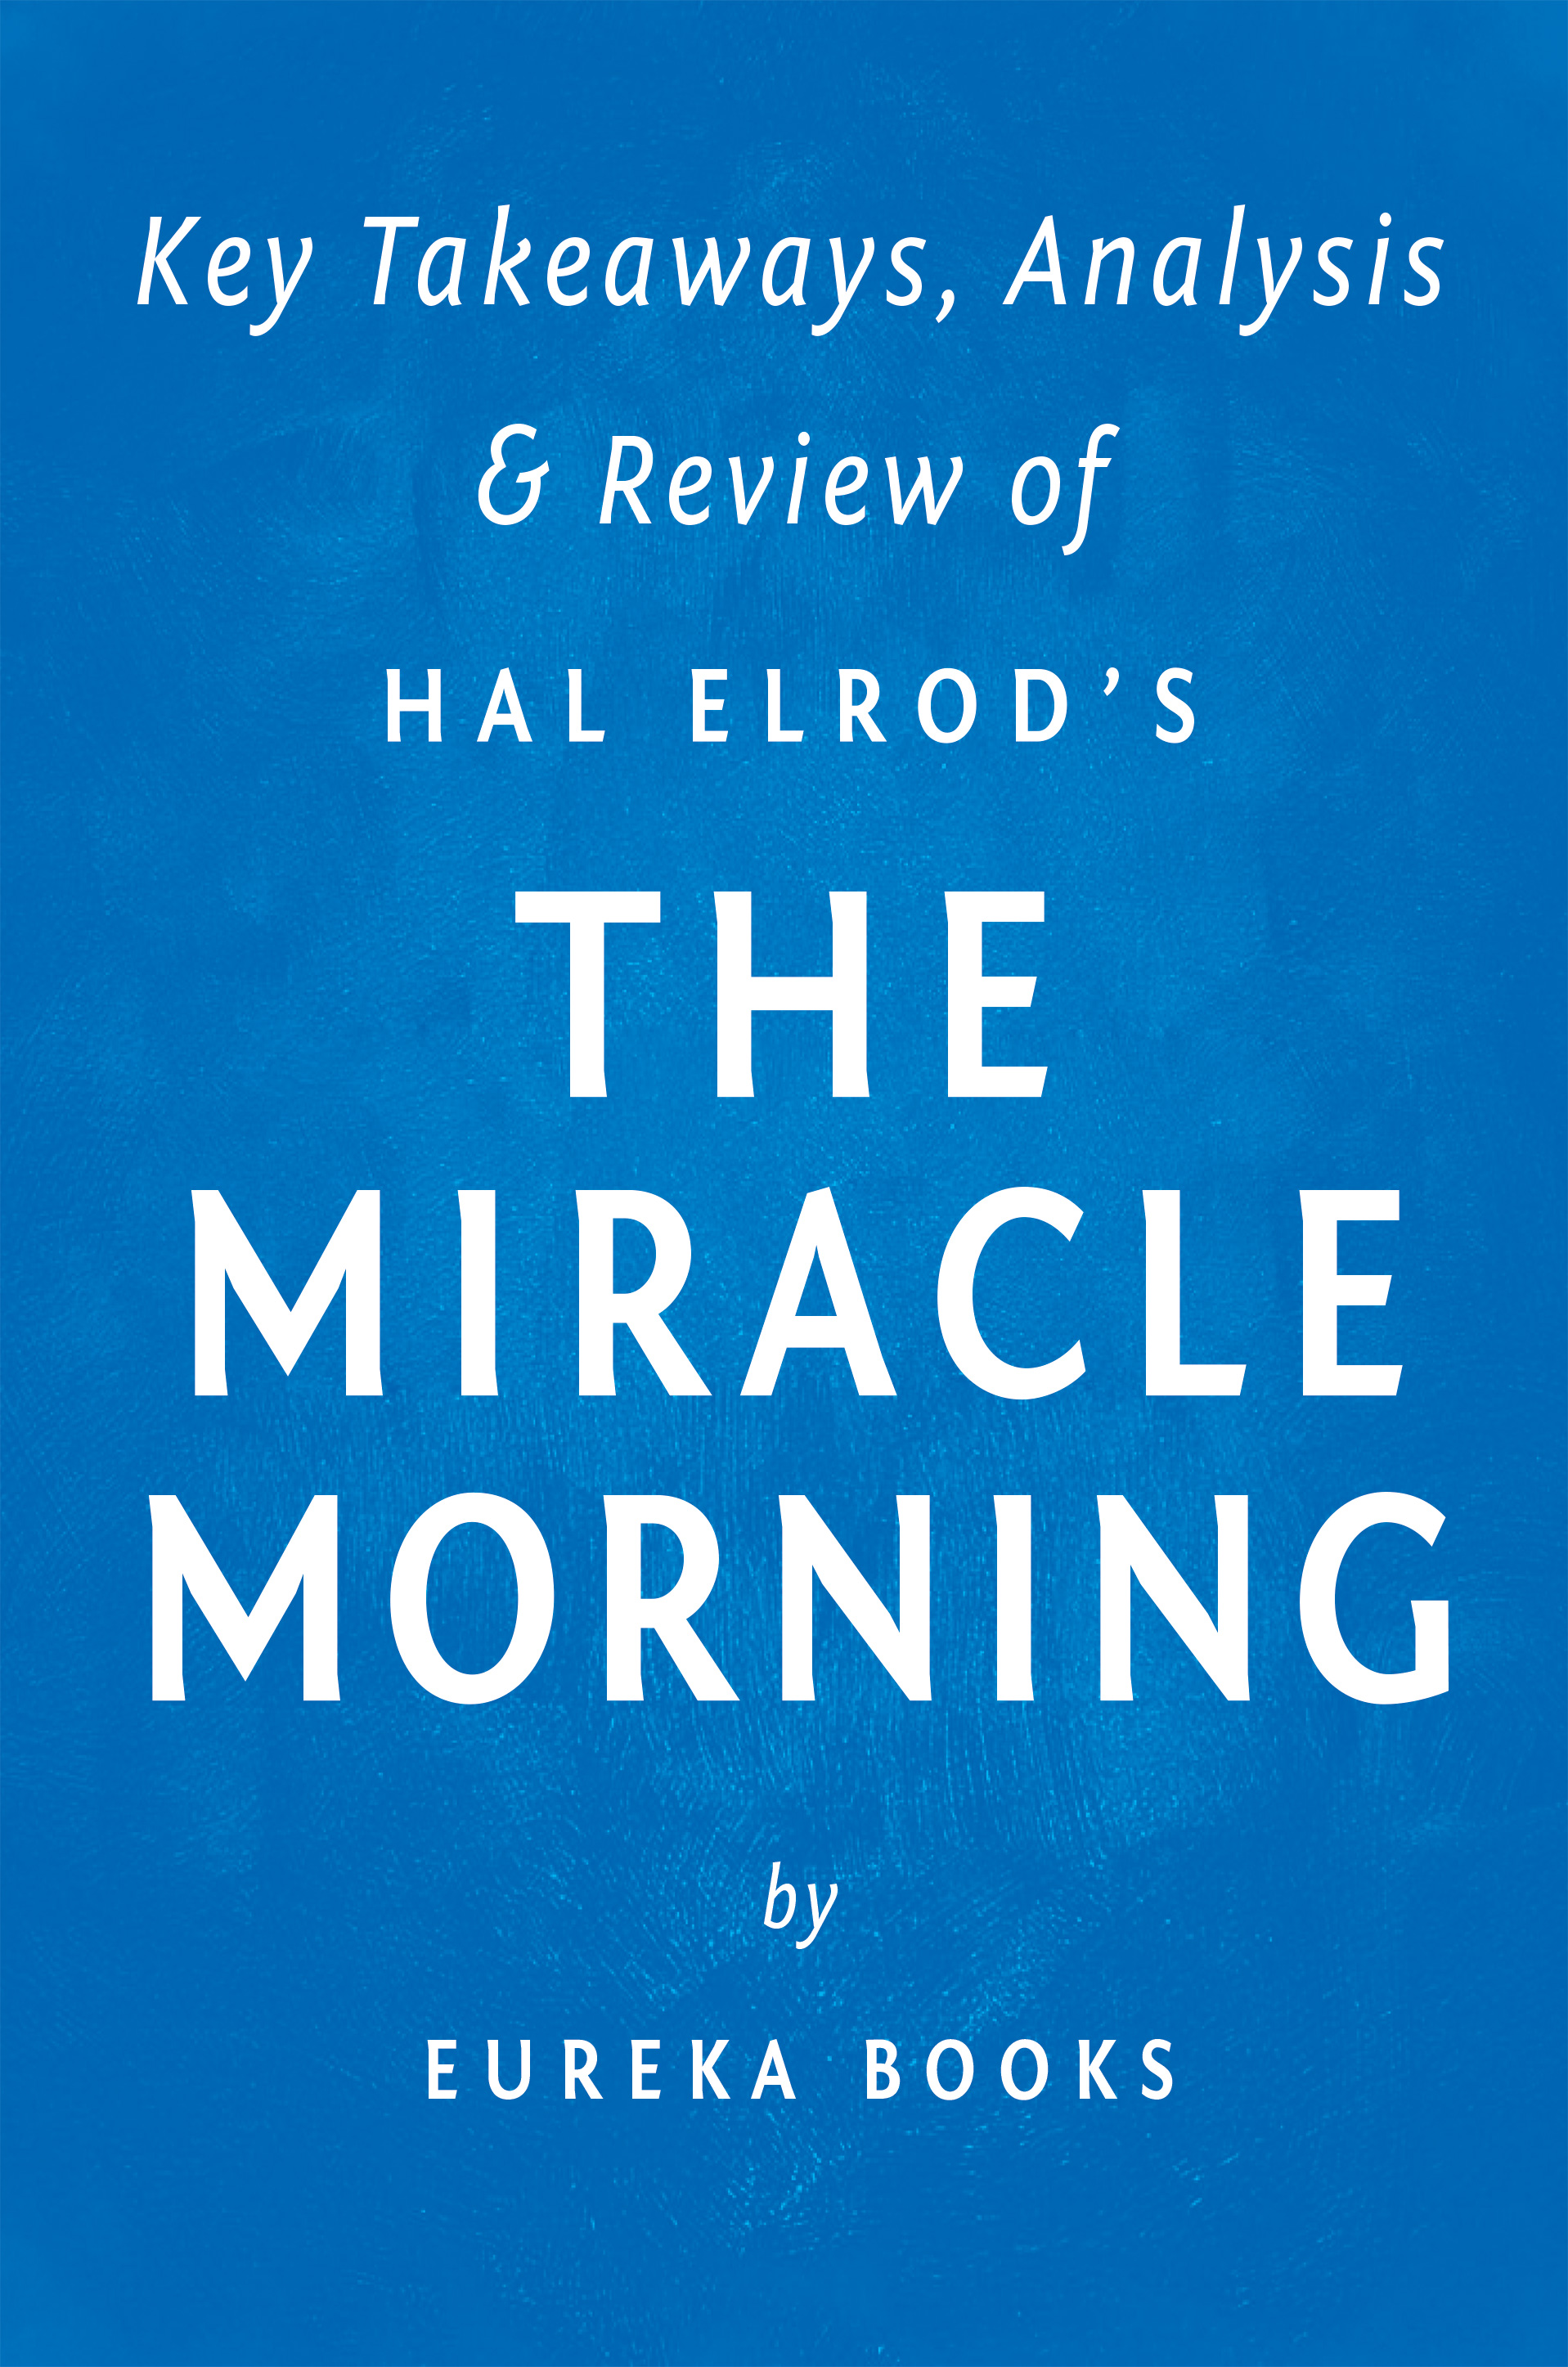 Download Ebook The Miracle Morning: by Hal Elrod | Key Takeaways, Analysis & Review by Eureka Books Pdf